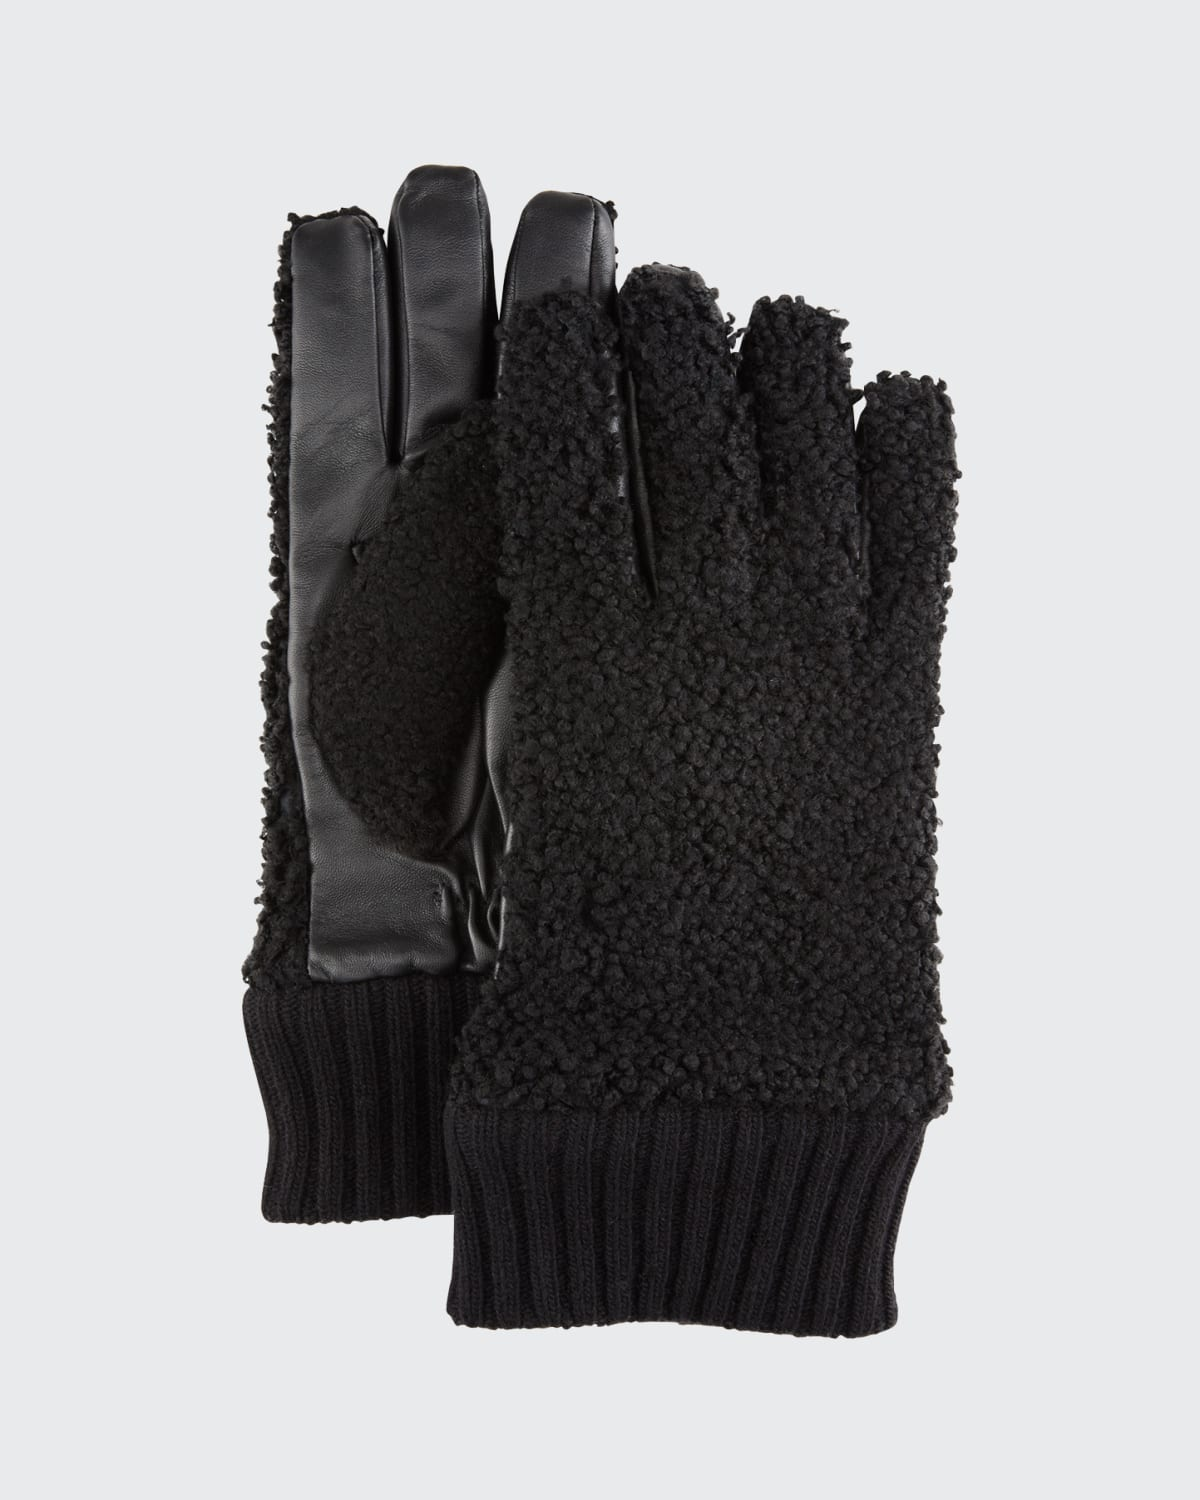 Men's Shearling/Napa Leather Gloves